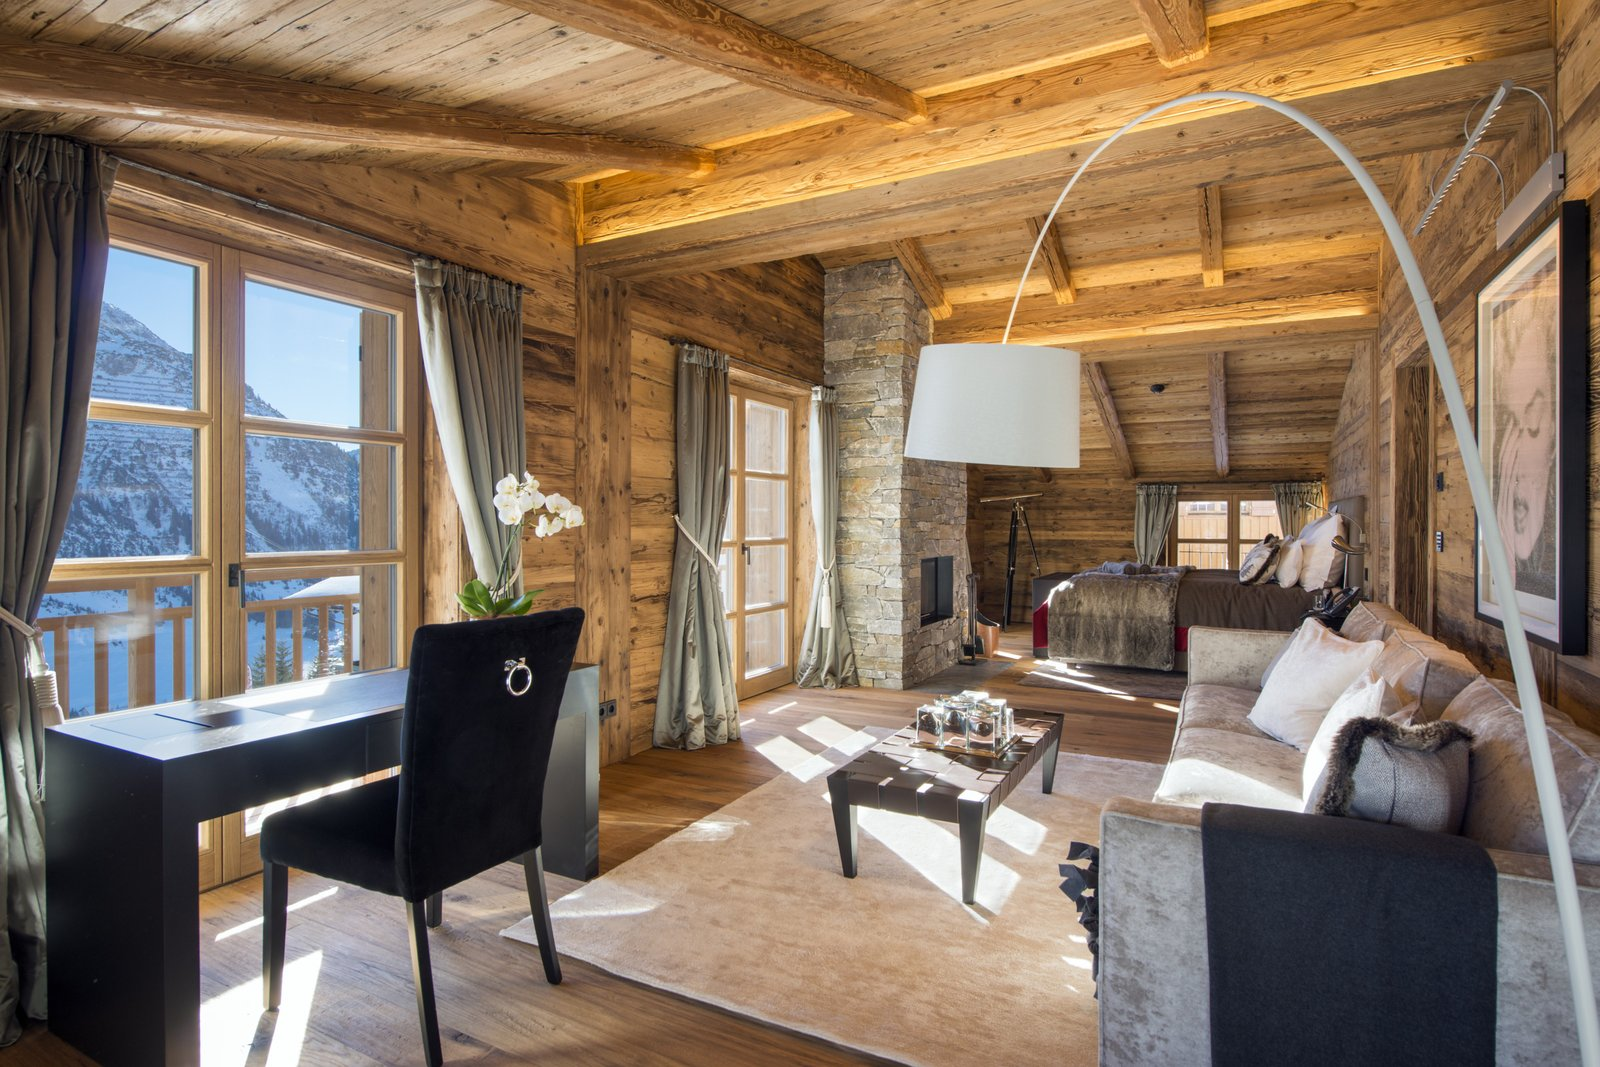 Photo 4 of 9 in Rent One of These Cozy Cabins For a Ski Trip This Winter